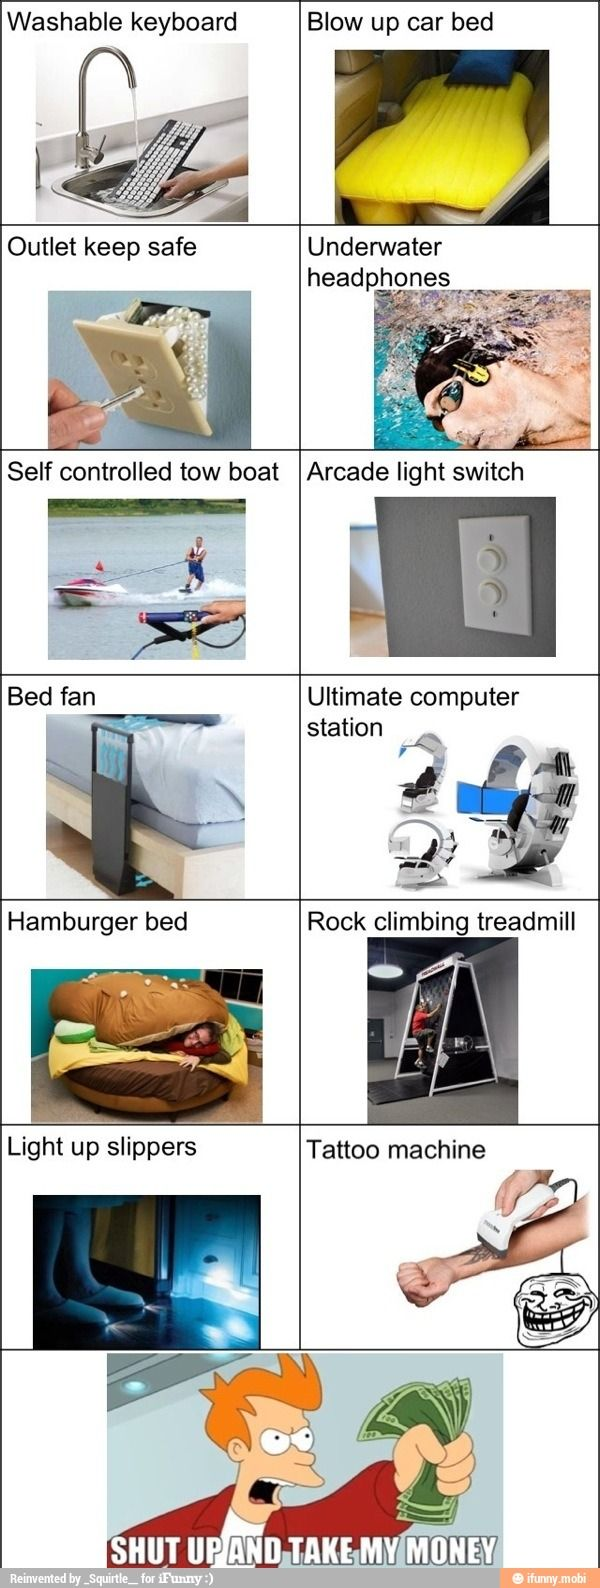 Amazing inventions / iFunny :)  I would use the tattoo thing to prank people! Lol